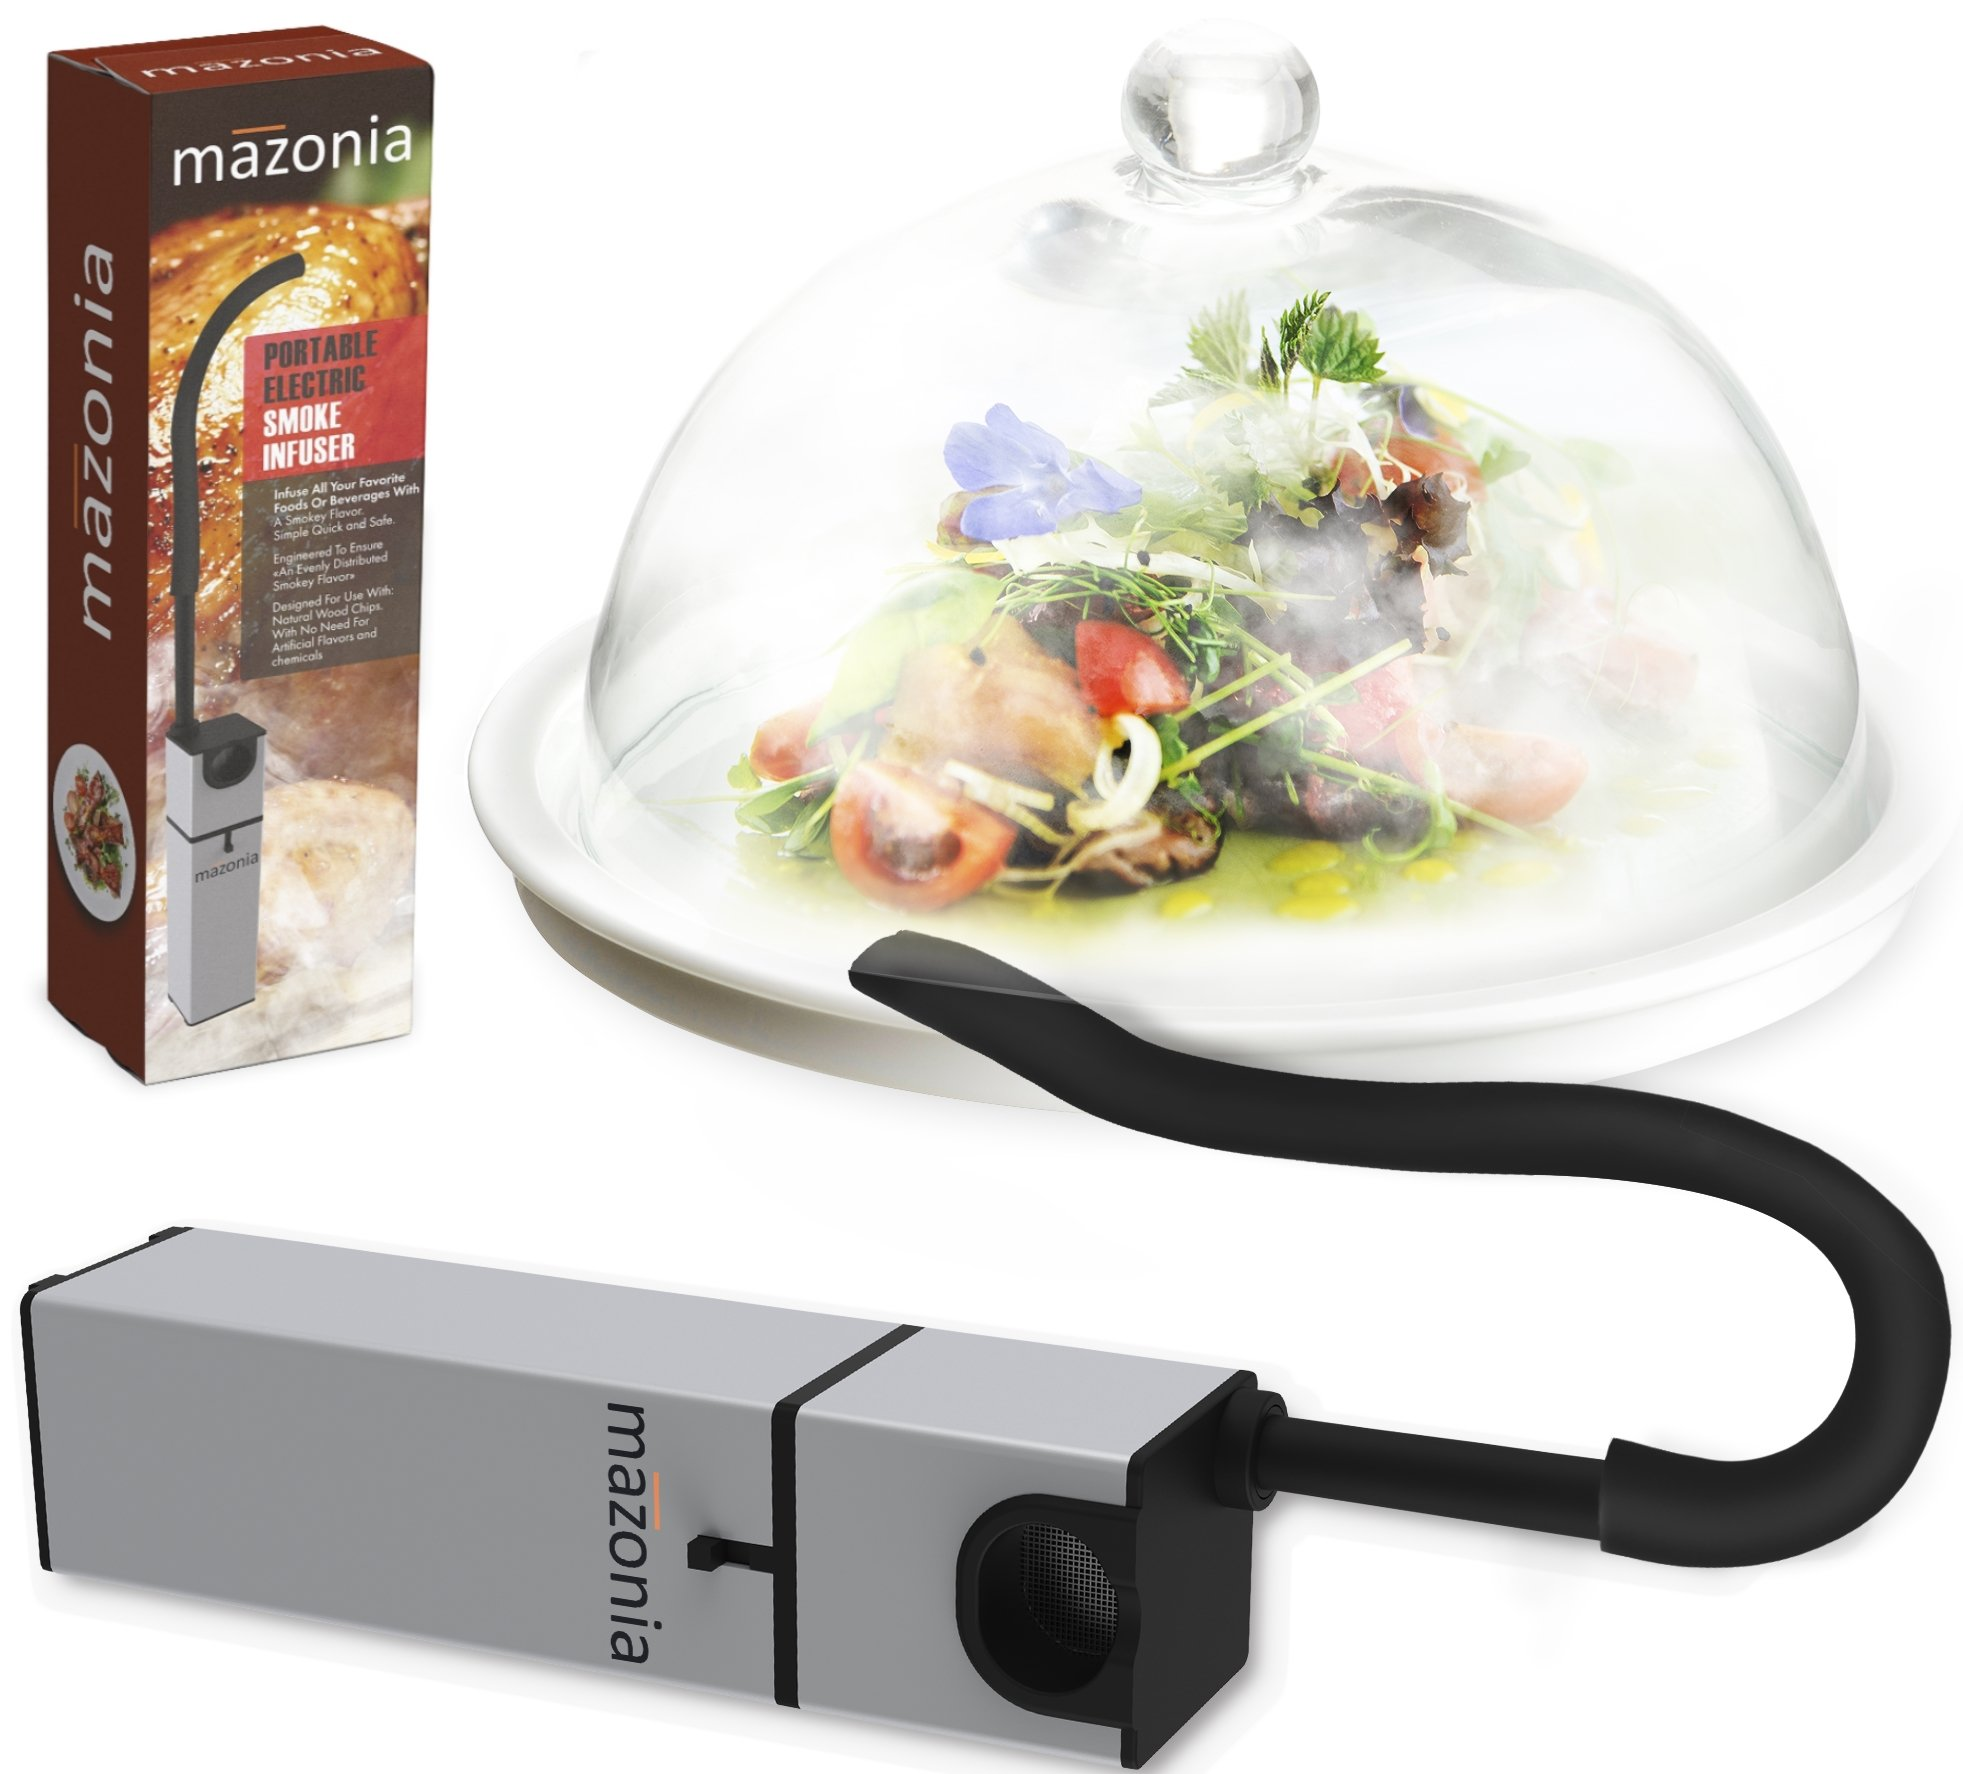 Mazonia Portable Infusion Smoker Gun For Kitchen Indoor/Outdoor | For Meat, Sous Vide, Grill, BBQ, Cocktail Drinks And Cheese. Uses Real Wood Chips (Gold) (Silver) by Mazonia